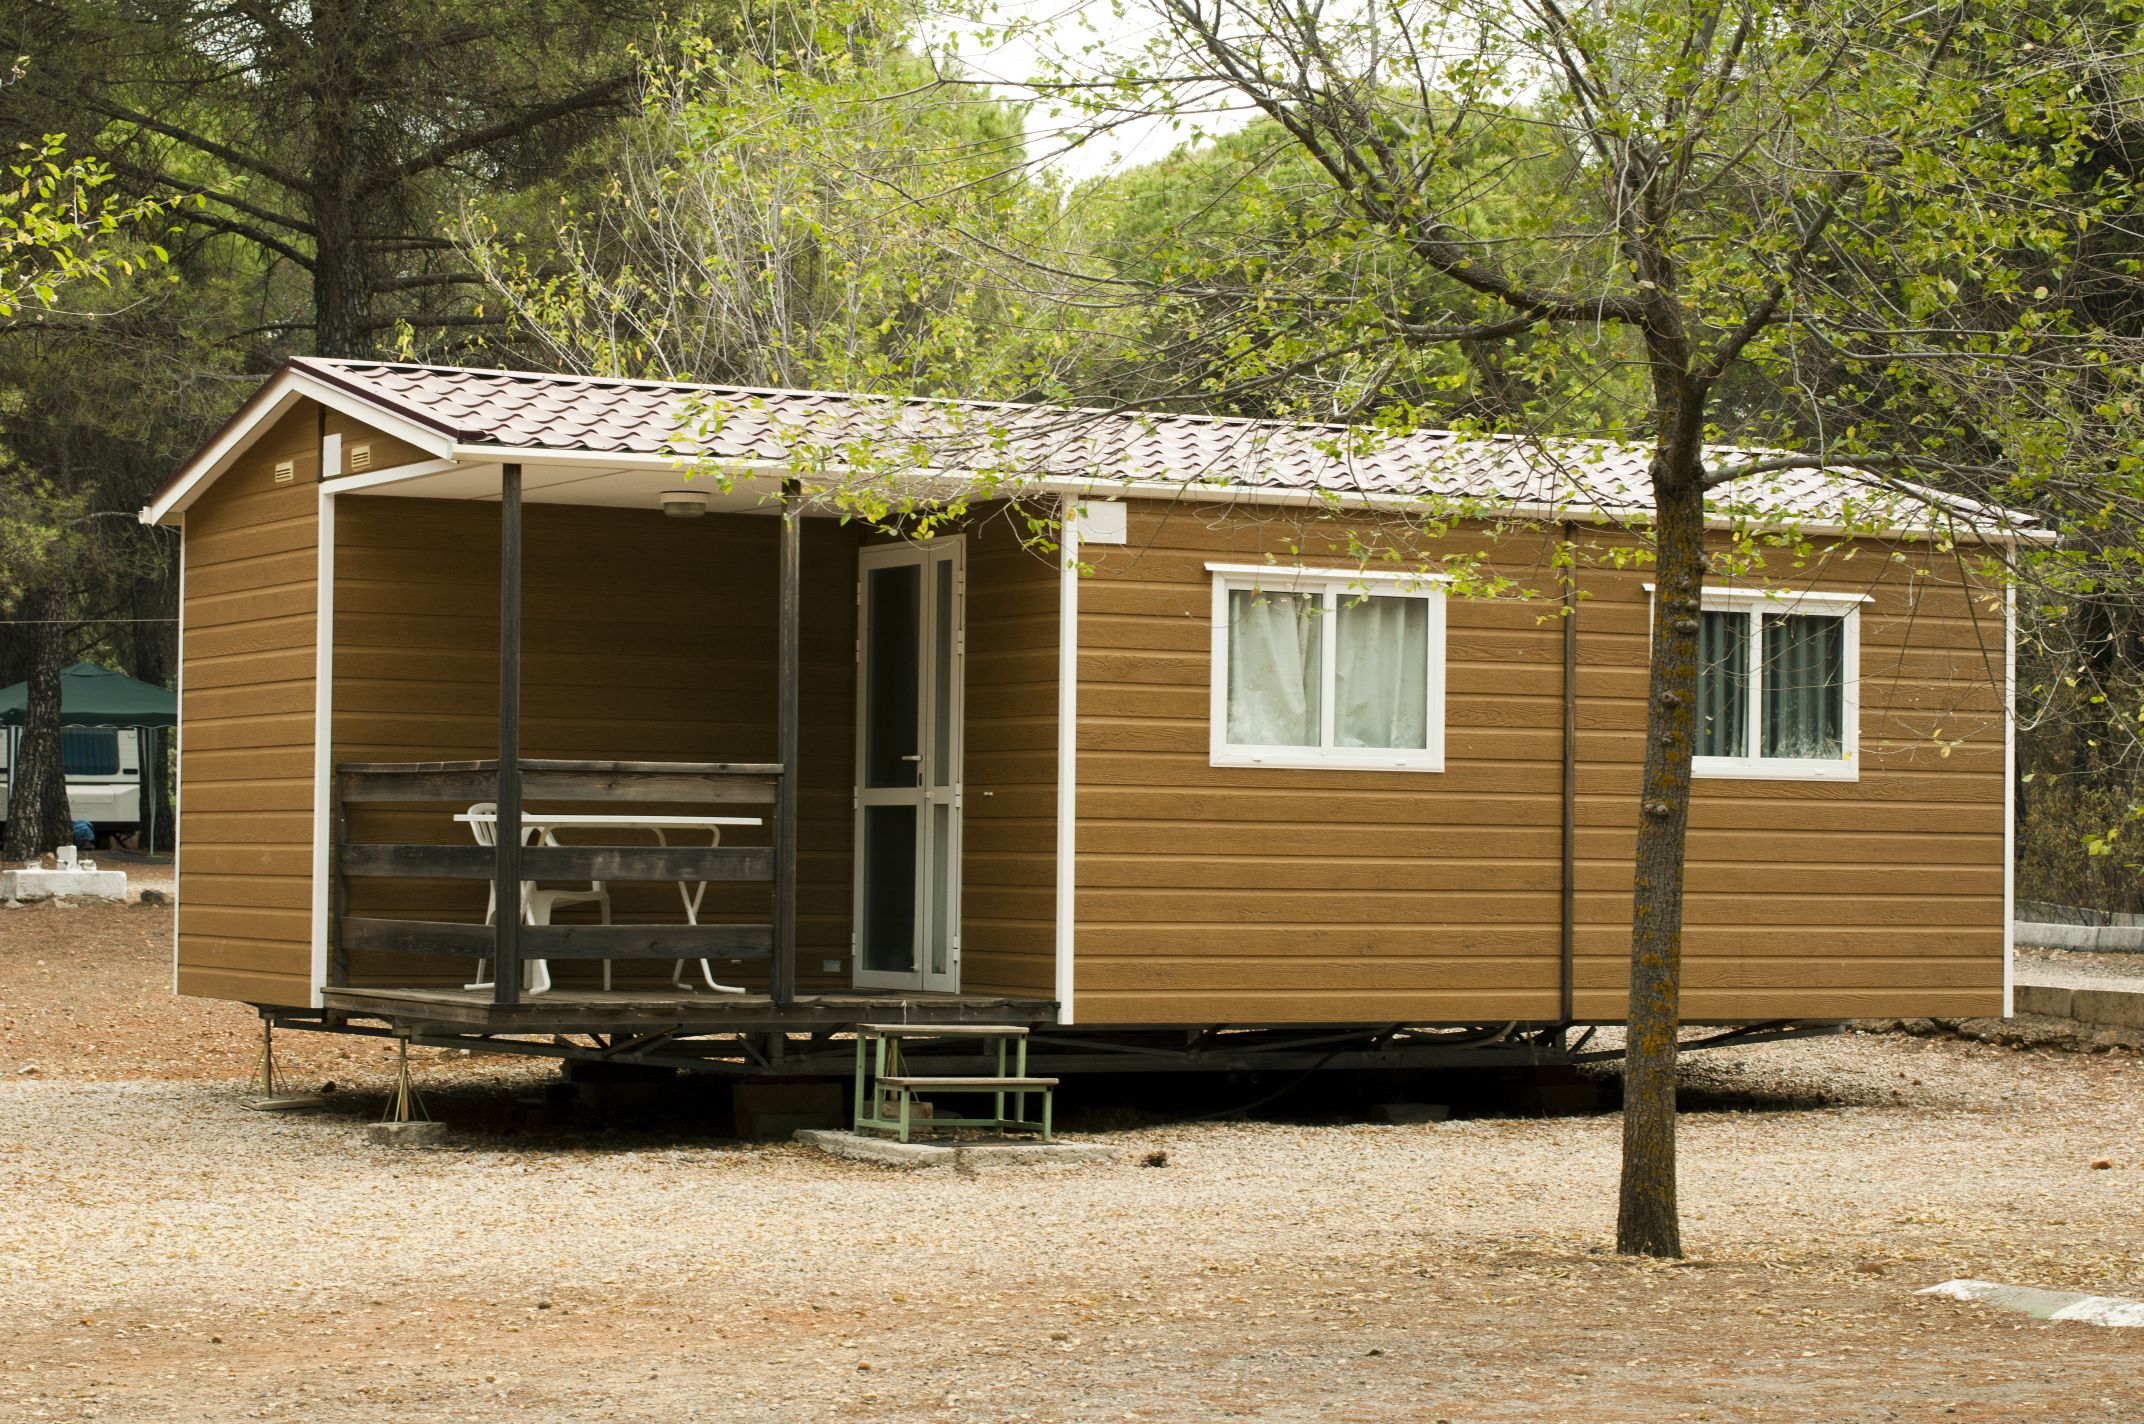 Repossessed Mobile Homes Are Financially Responsible Housing Options